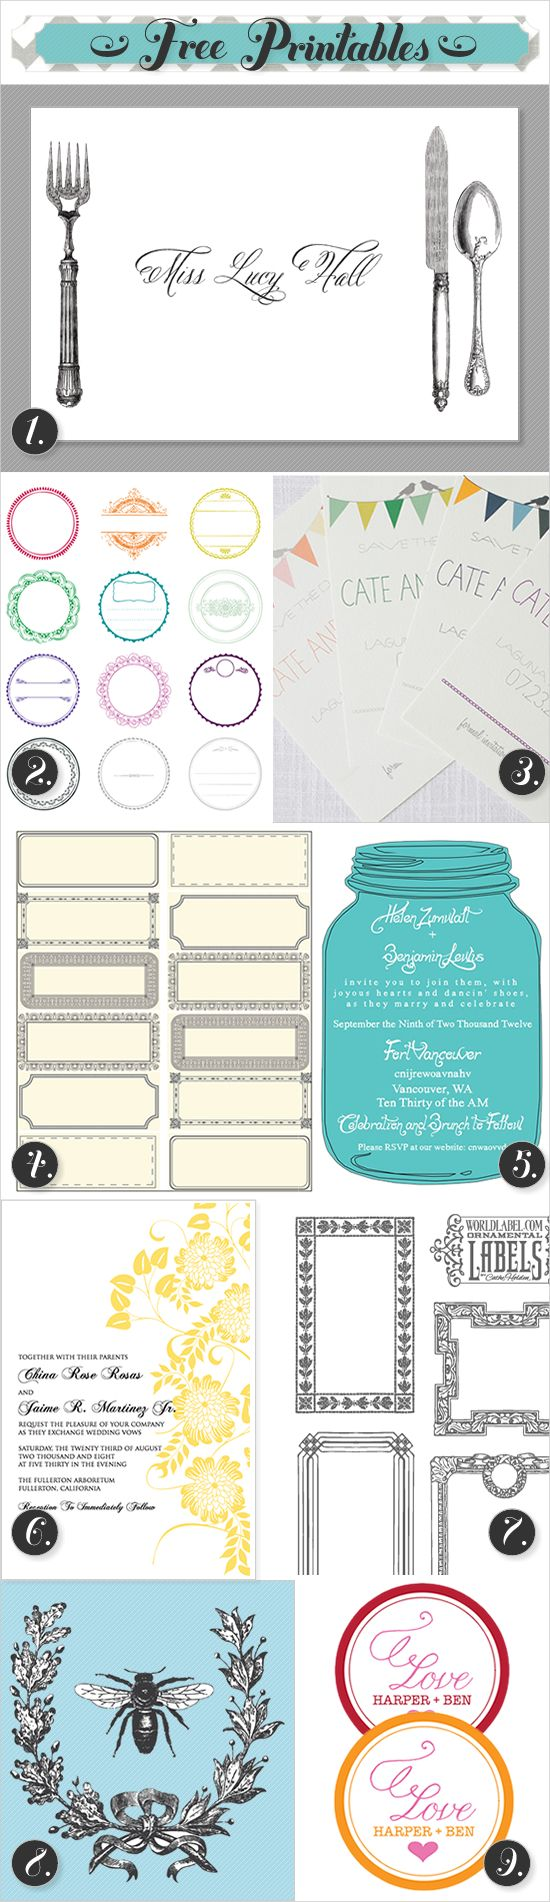 FREE PRINTABLES FOR YOU! Just go to the site click on invitations, ext. choose your design, write in your names or dates, and your ready to save your FREE and EASY Invitations, lables ext.